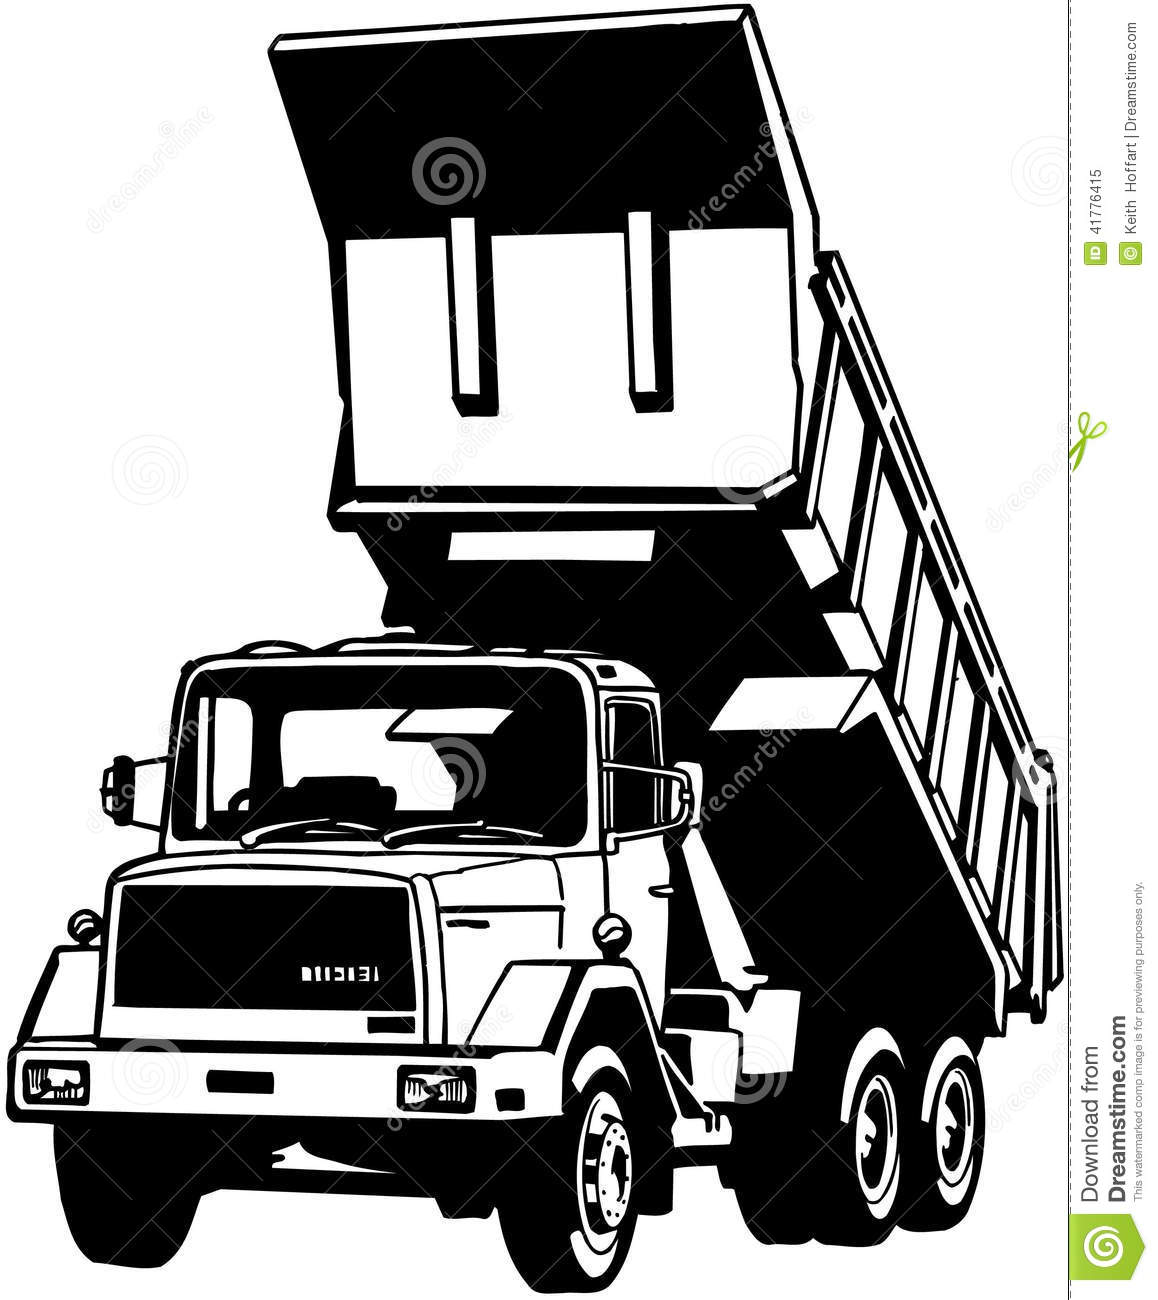 8 Cartoon Dump Truck Vector Images